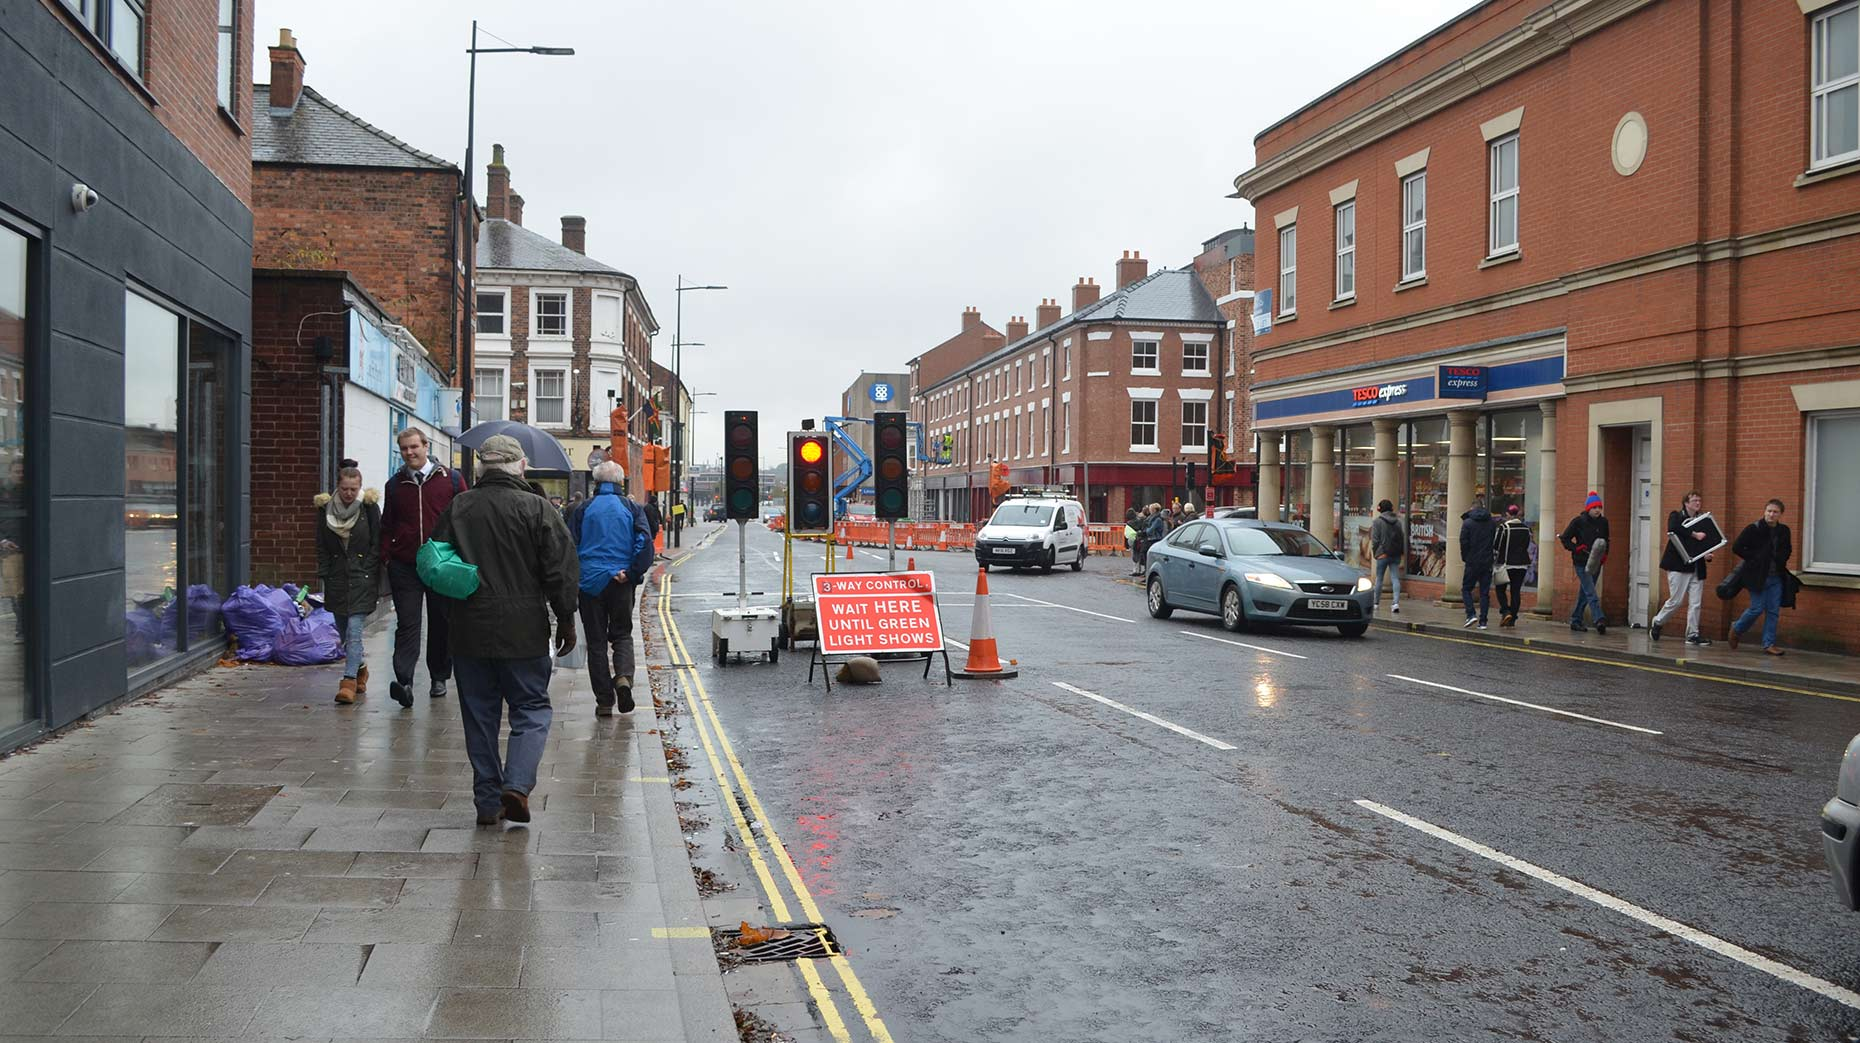 Temporary traffic lights and works will be gone by next week. Photo: Emily Norton